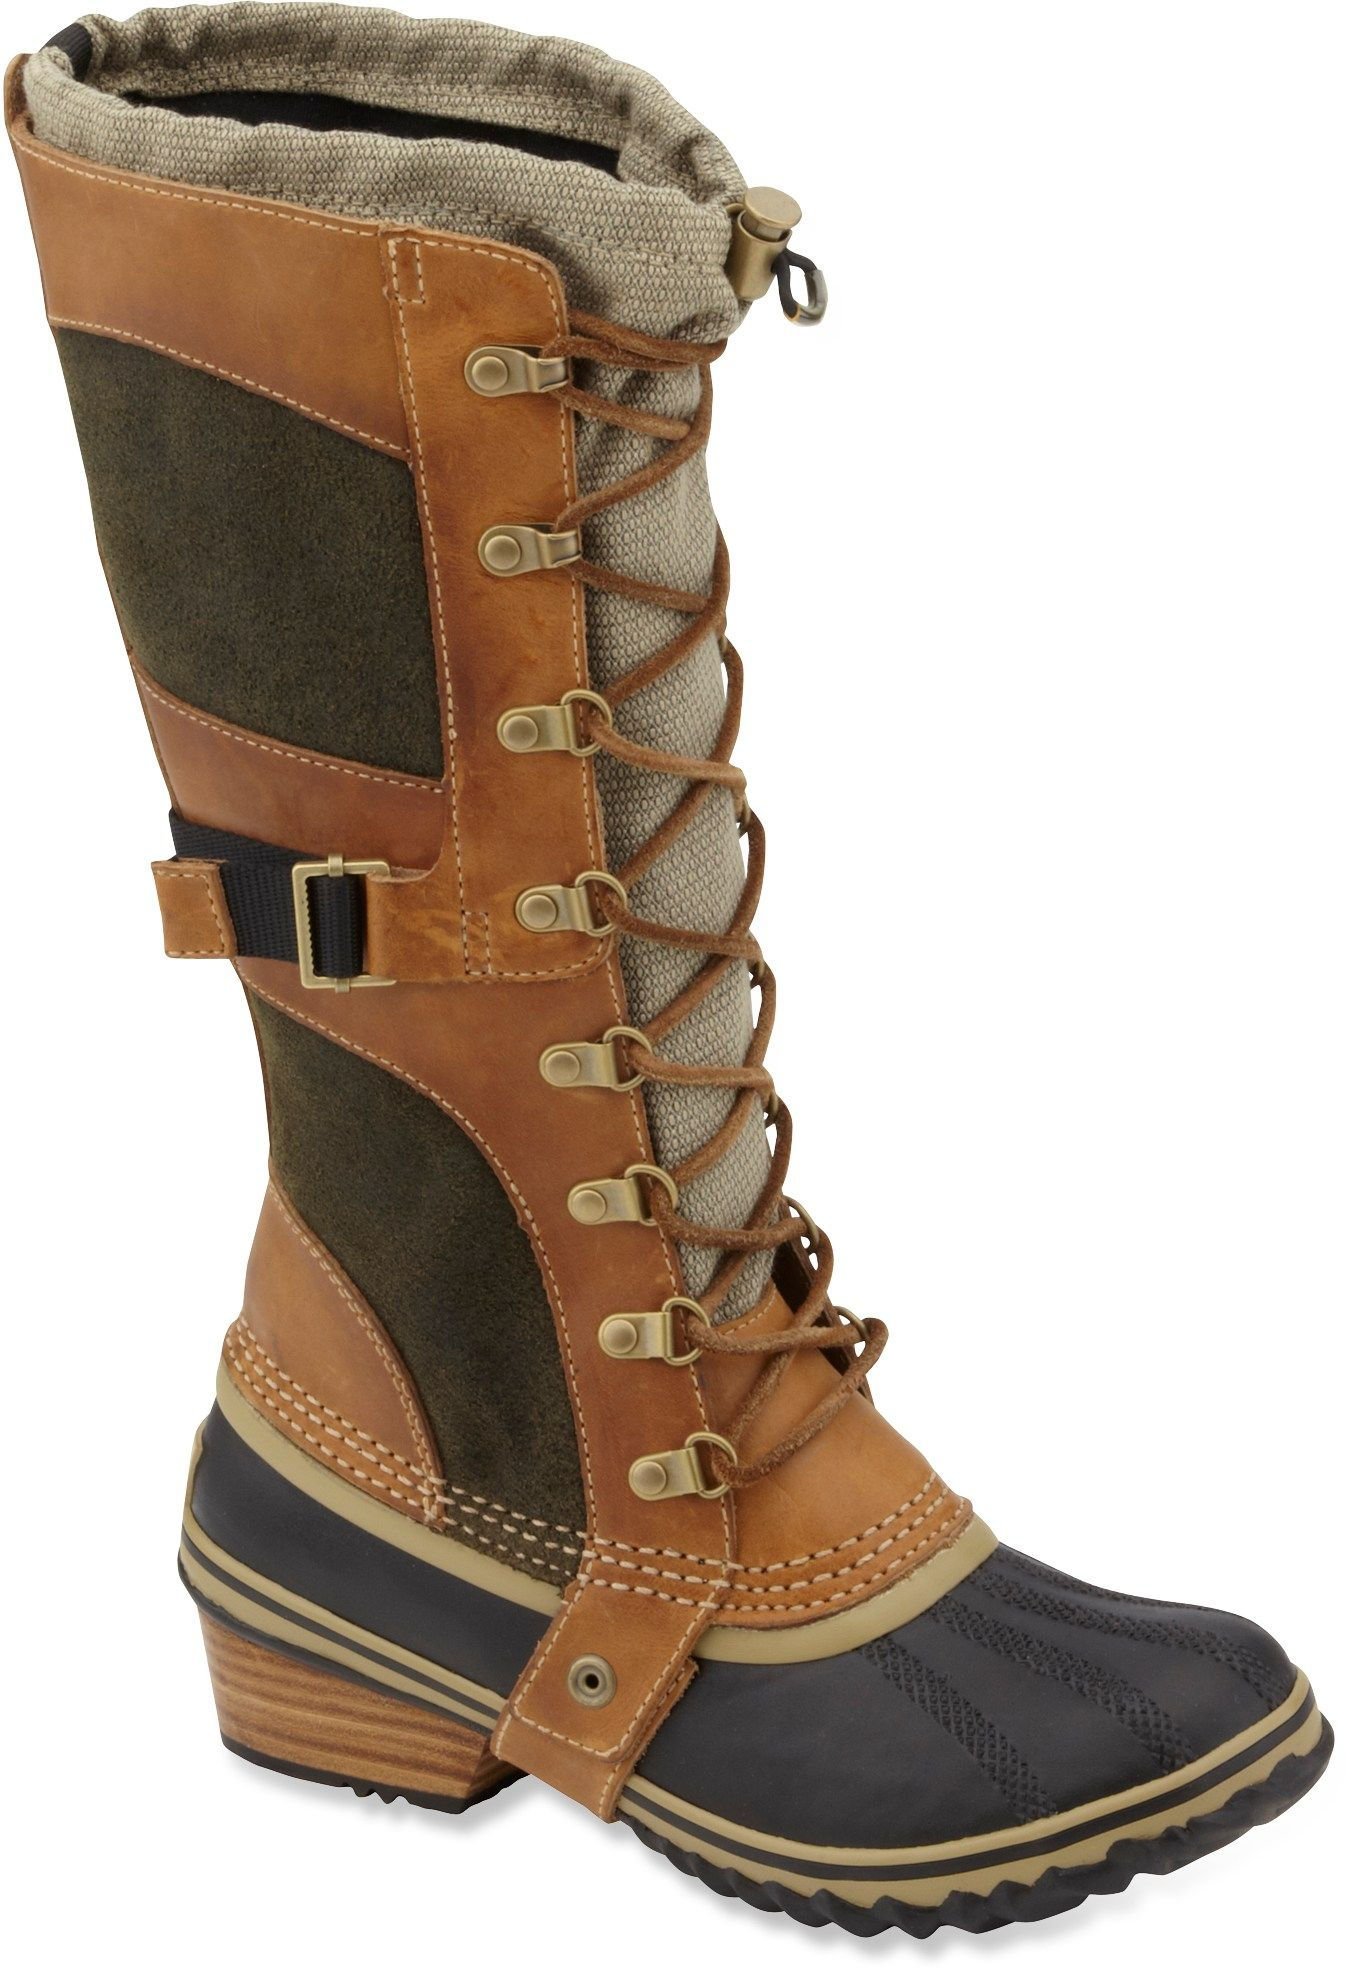 ae4e4578d4e52 Sorel Conquest Carly Winter Boots - Women s - Free Shipping at REI ...